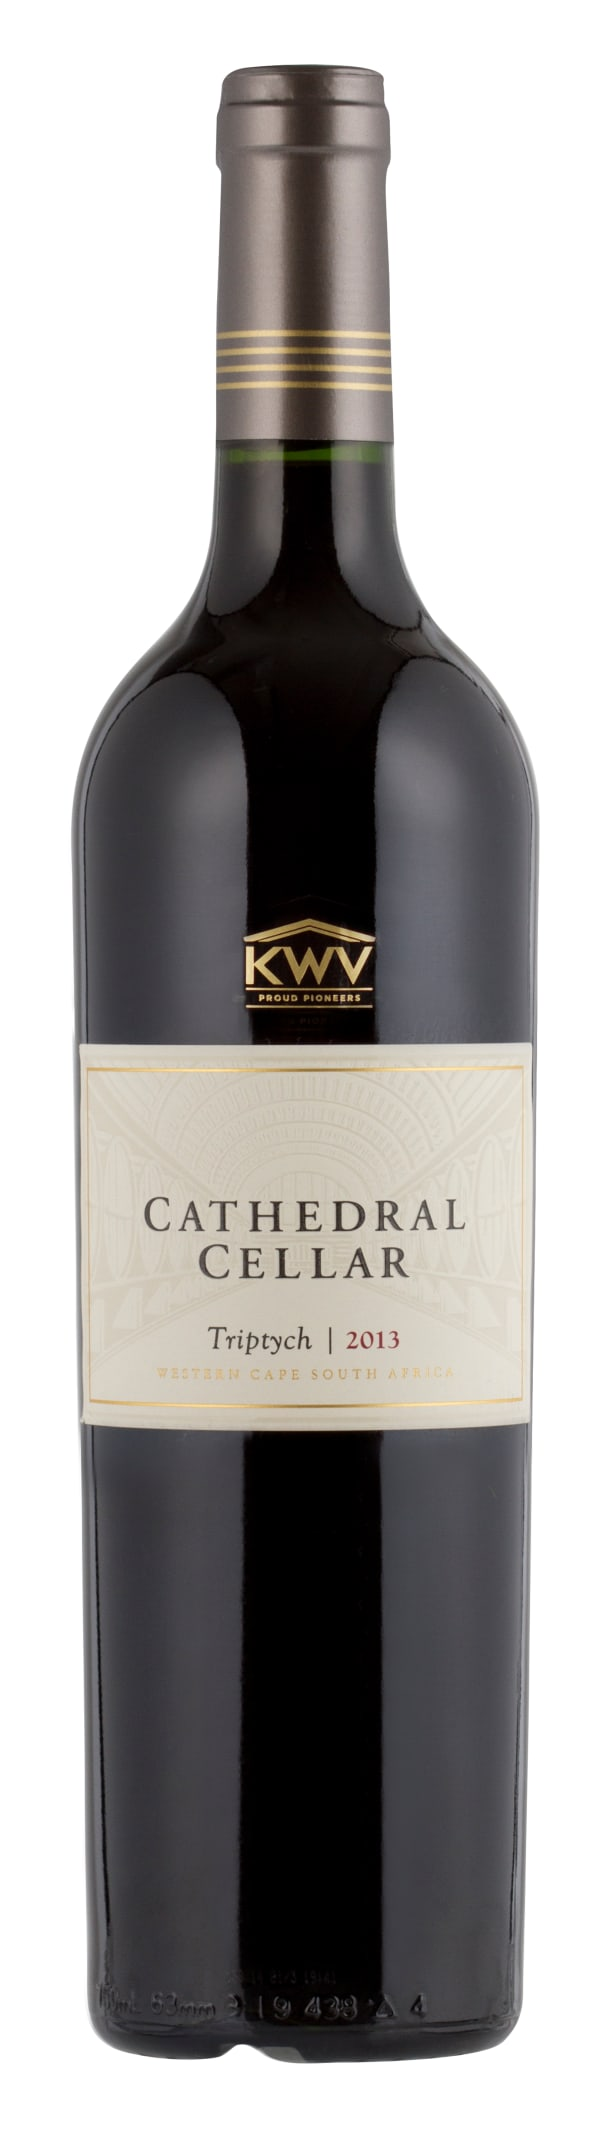 Cathedral Cellar Triptych 2013